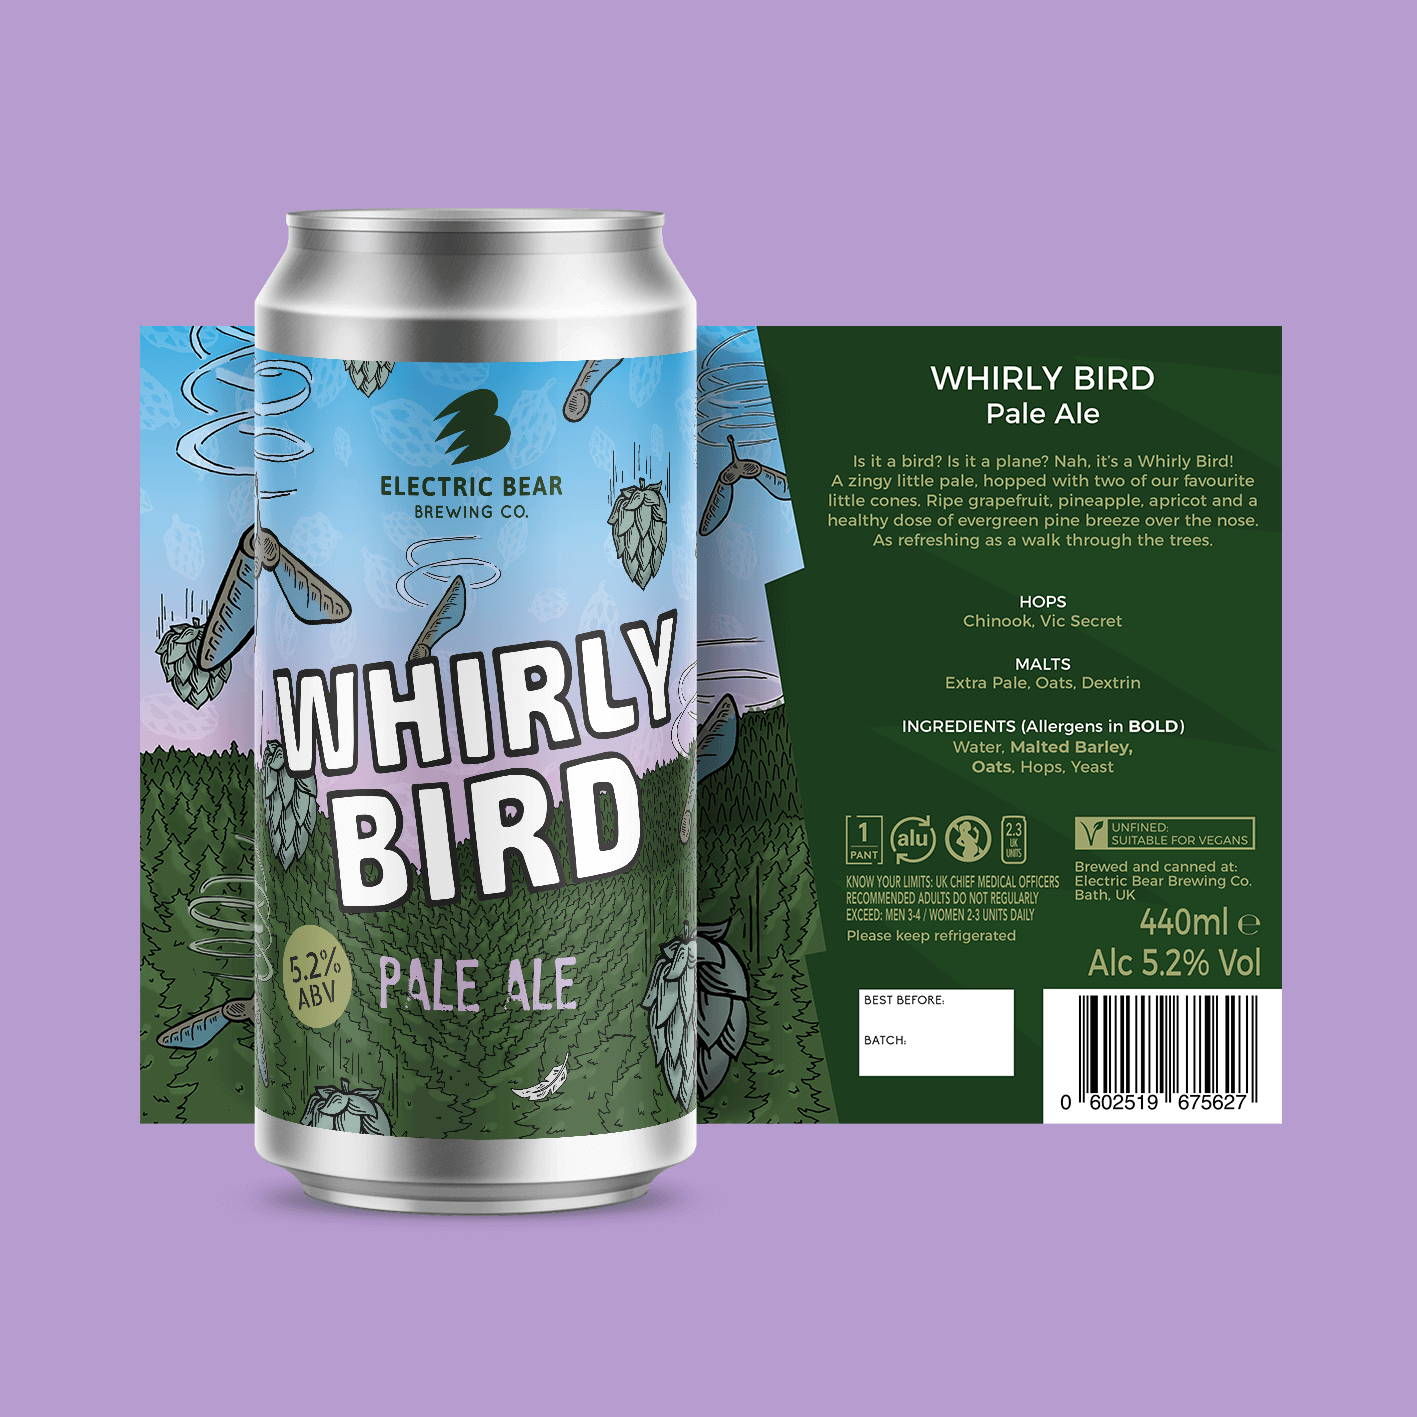 Whirly Bird pale ale brand image